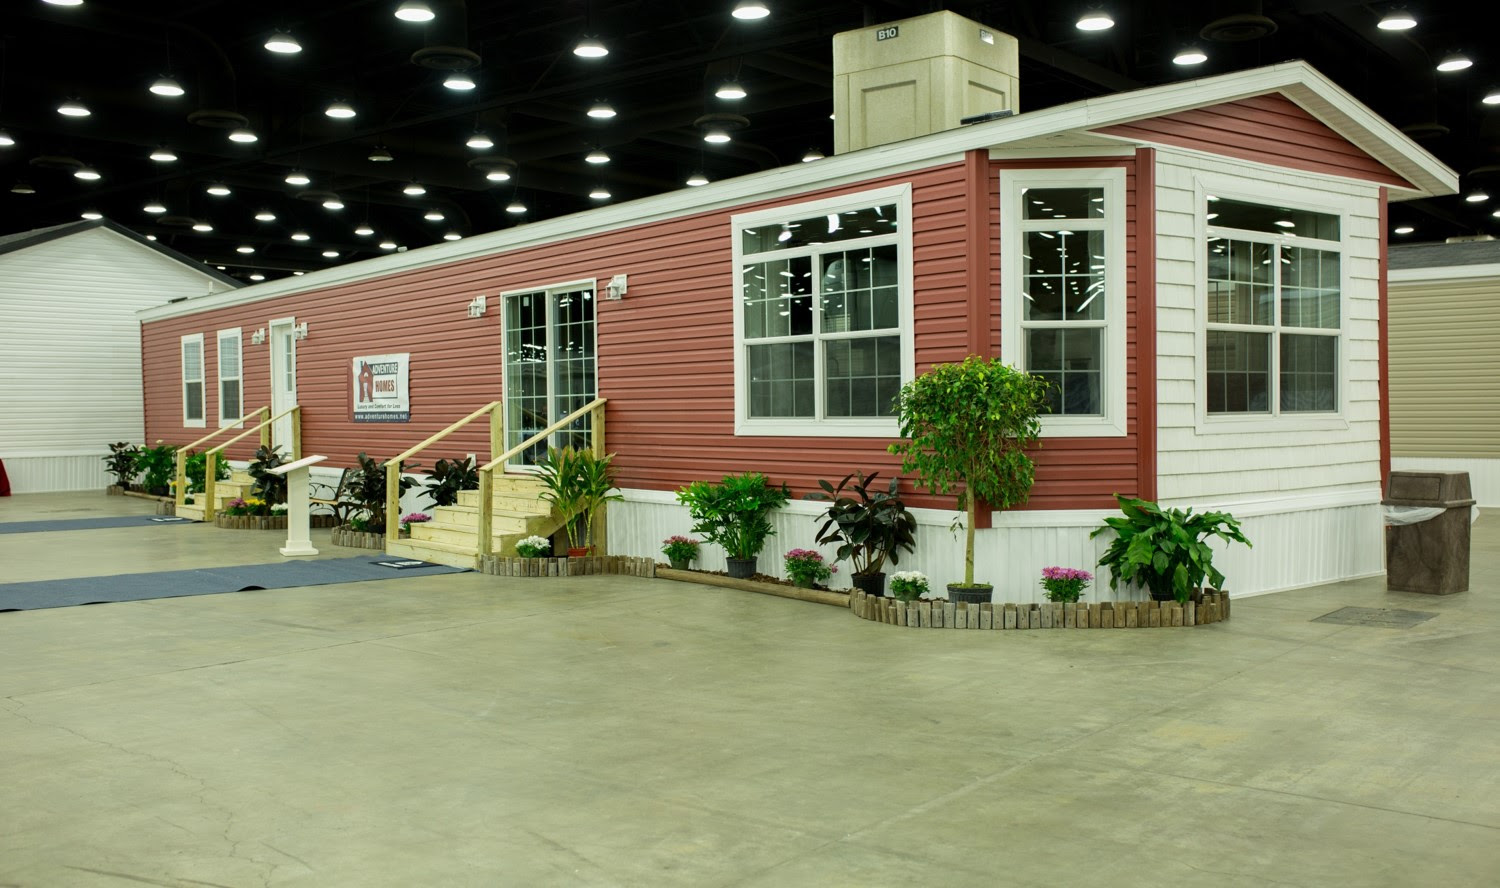 2018 New Manufactured Home Designs Mhi Manufactured Housing Institute